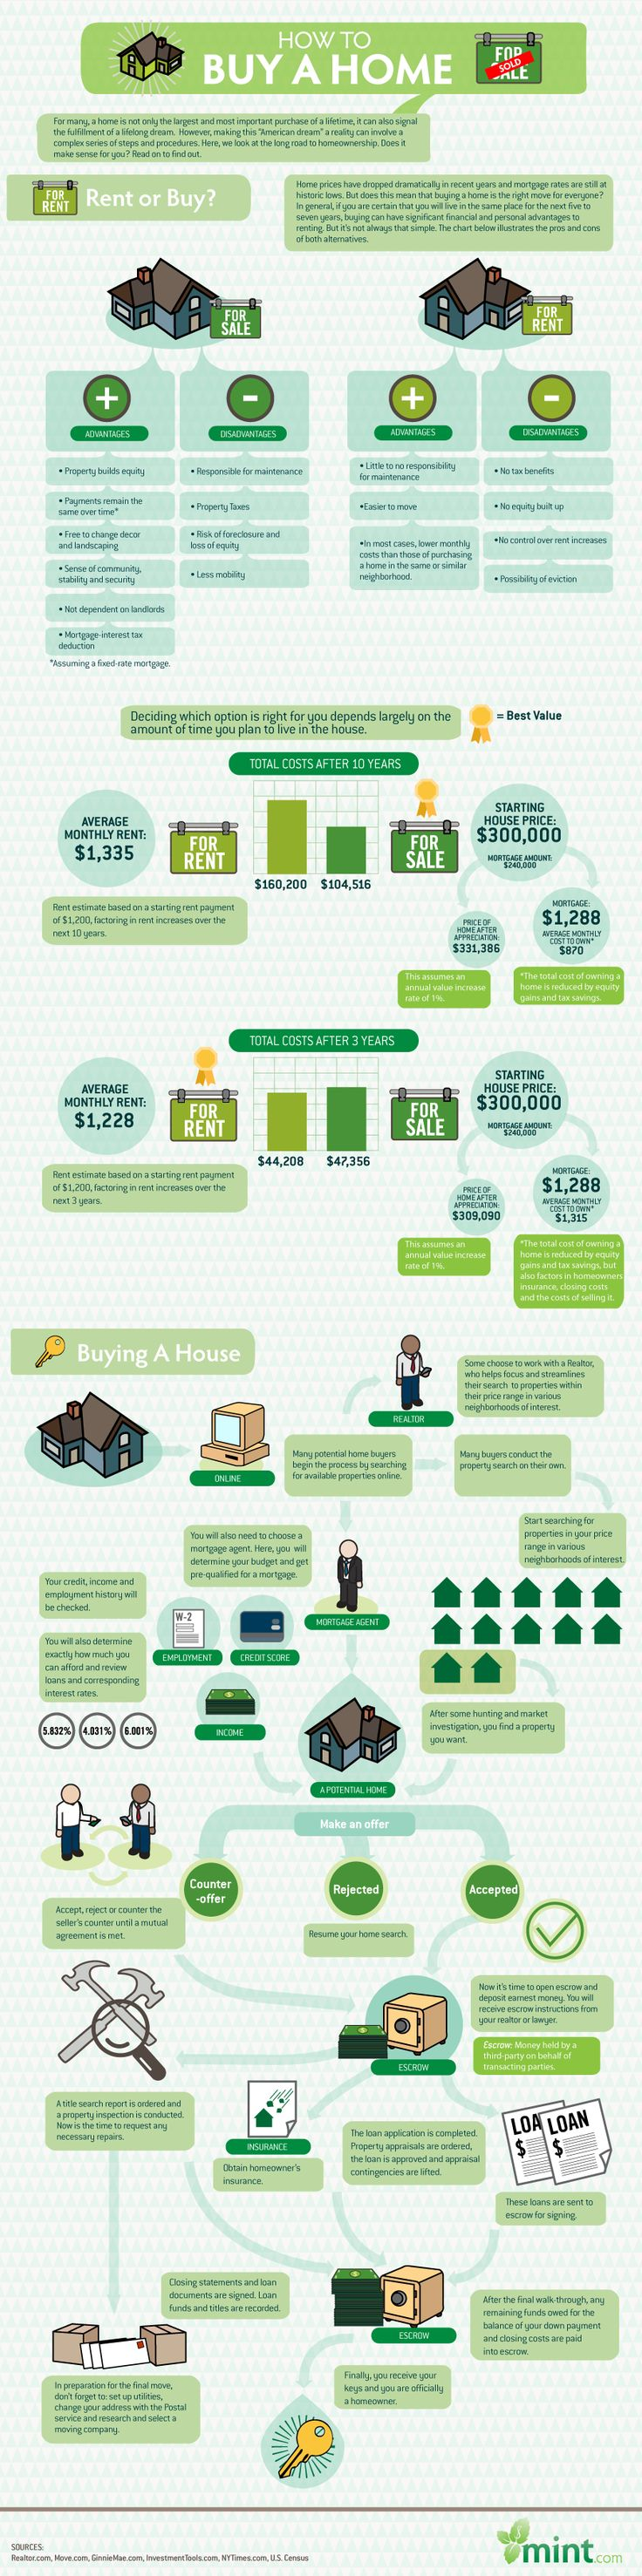 Infographic: How To Buy A Home